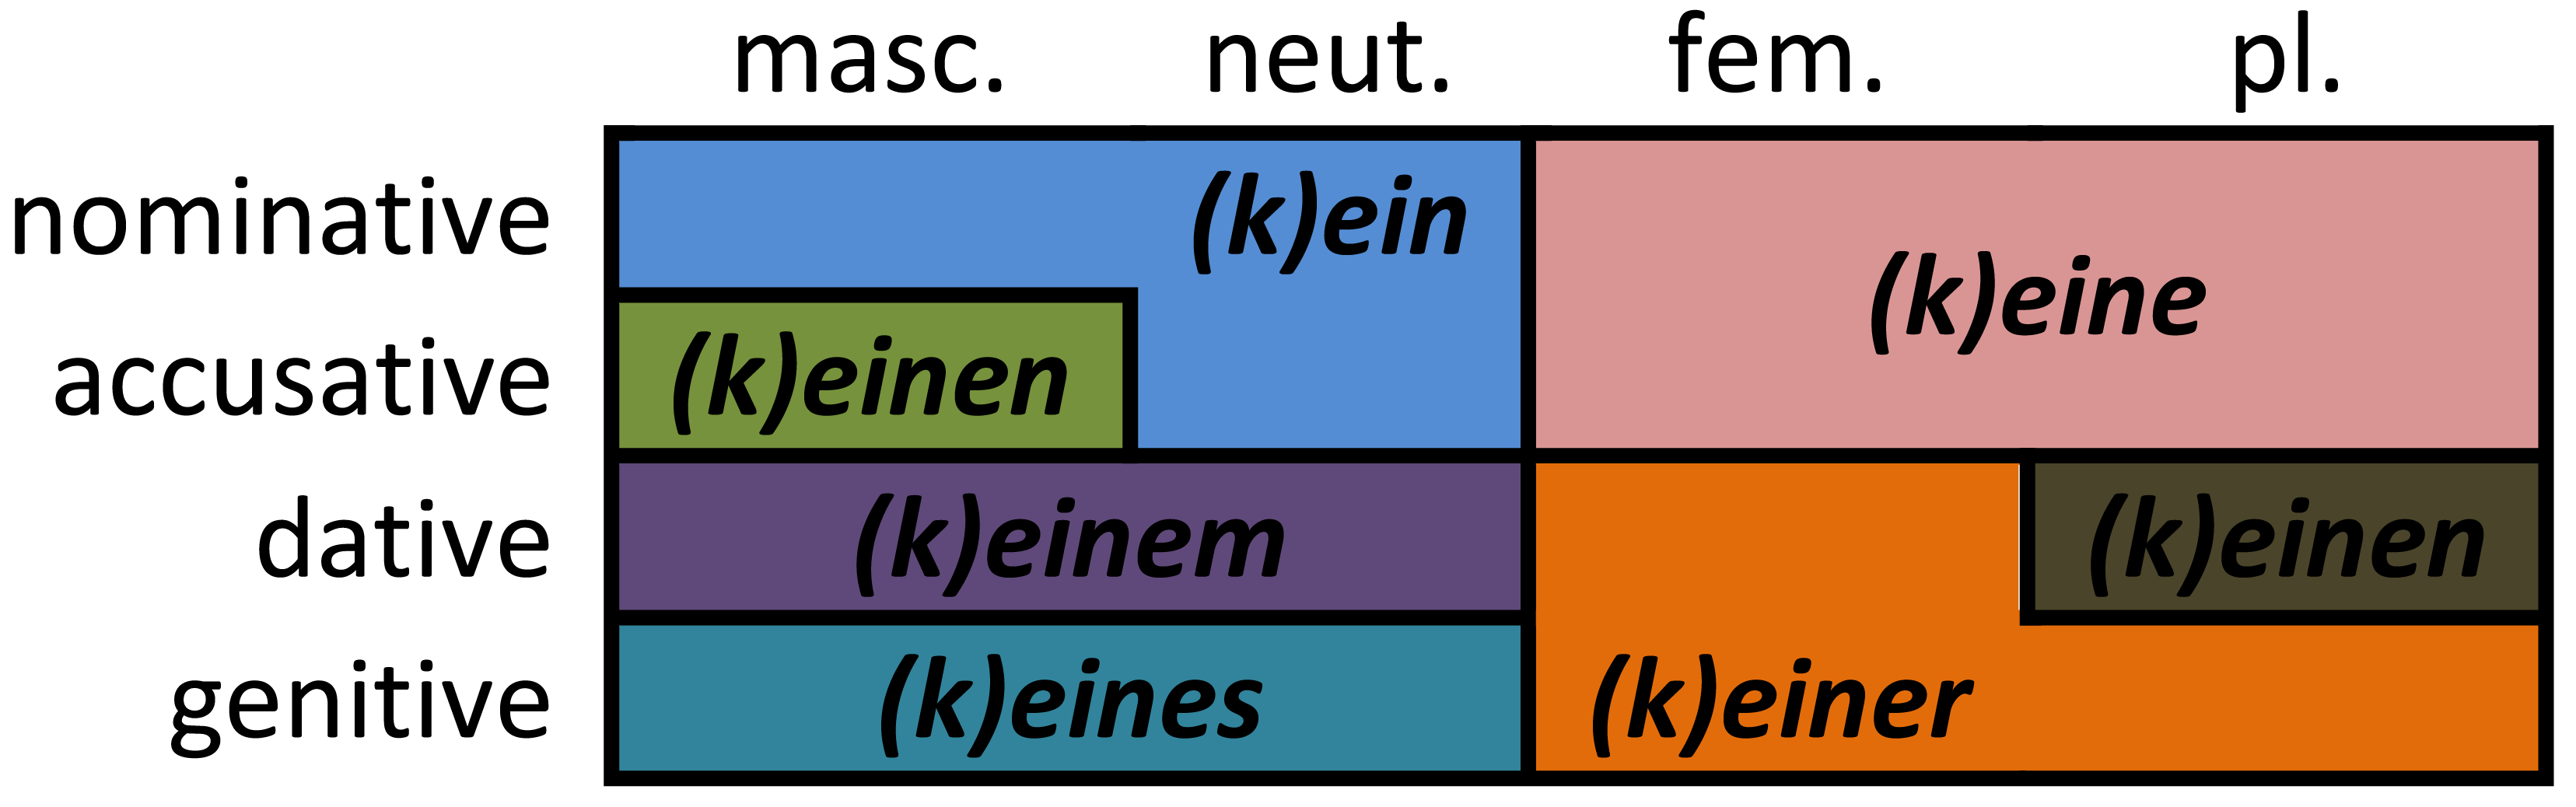 German Question About Accusative Nominative Etc And A Question About The Gender